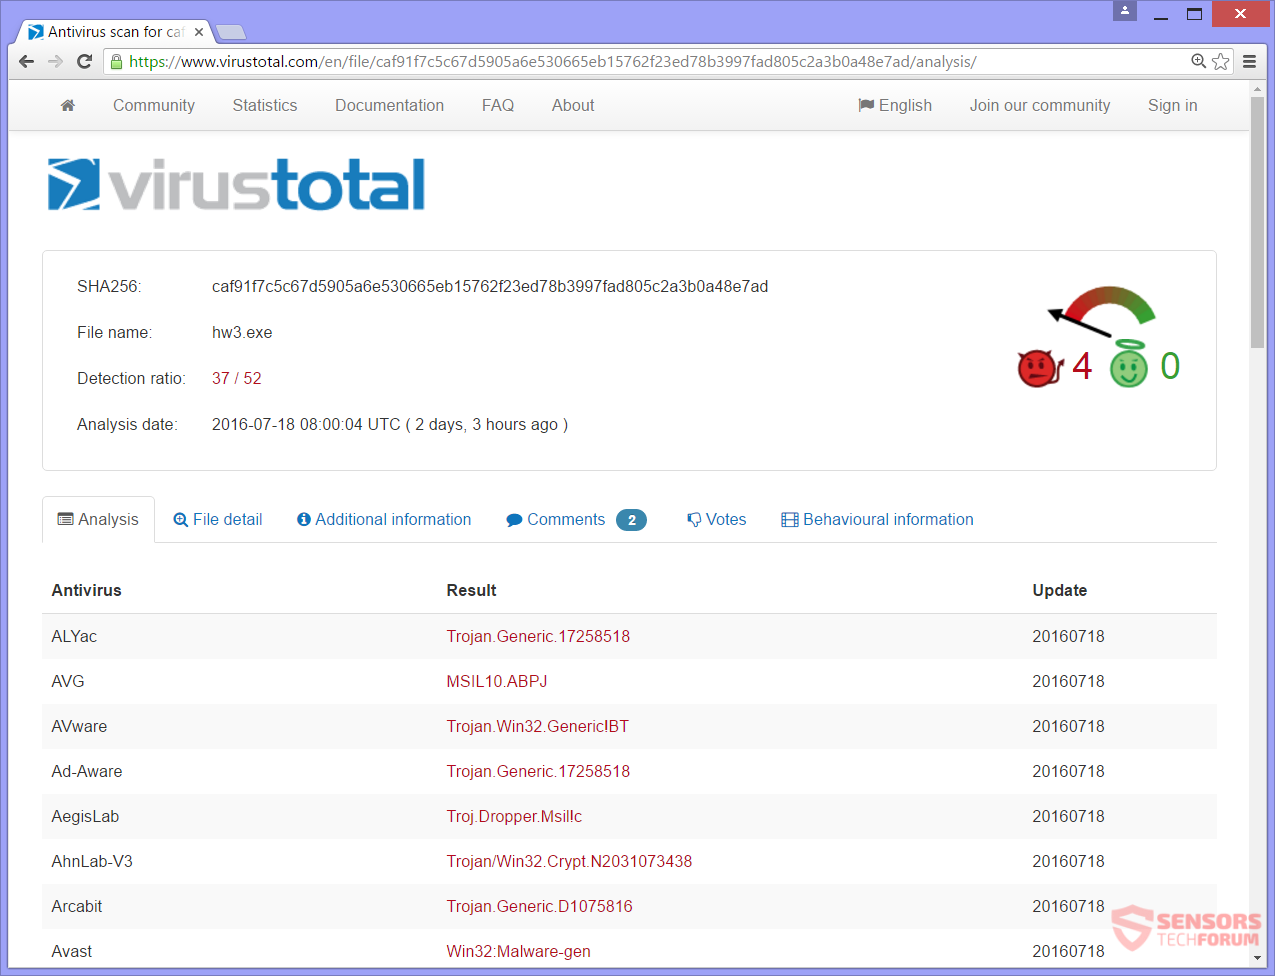 STF-cuteransomware-ransomware-cute-virustotal-virus-total-detection